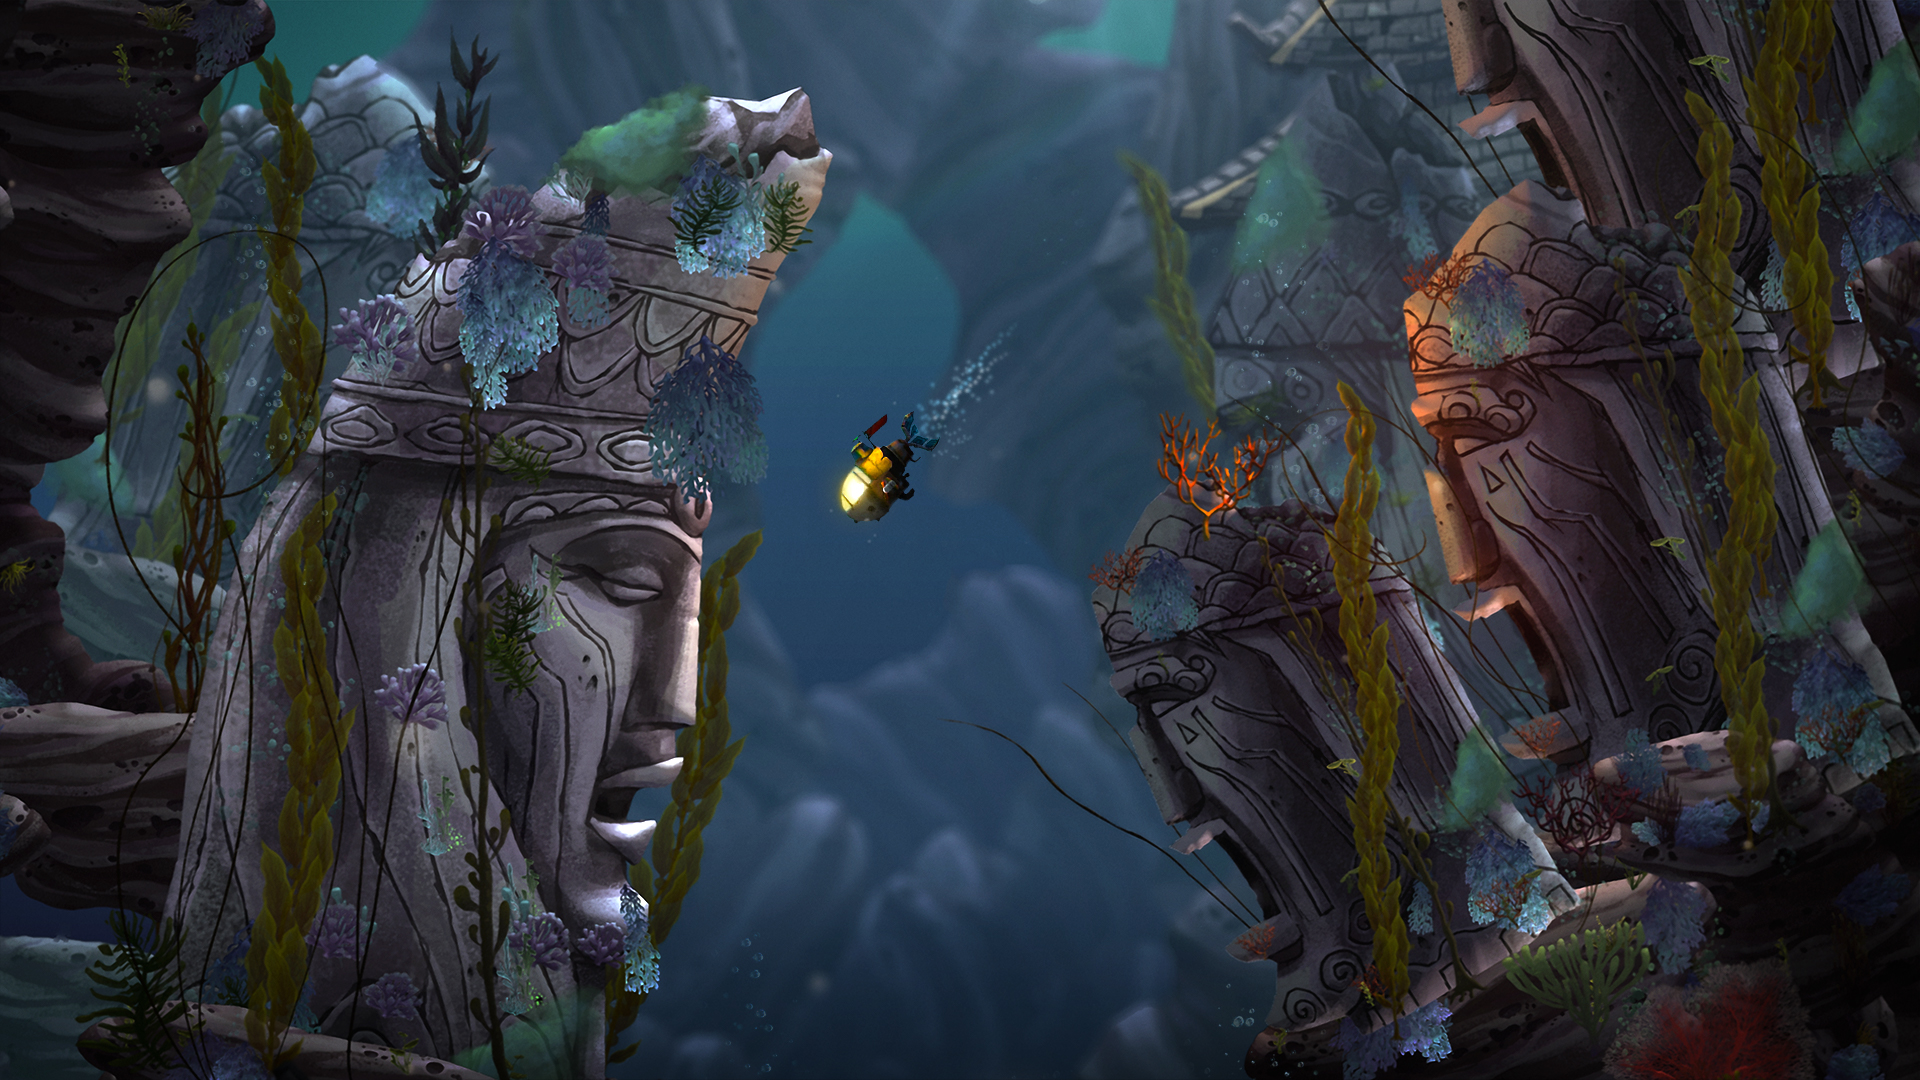 Song of the Deep will be published by GameStop's new GameTrust vertical.